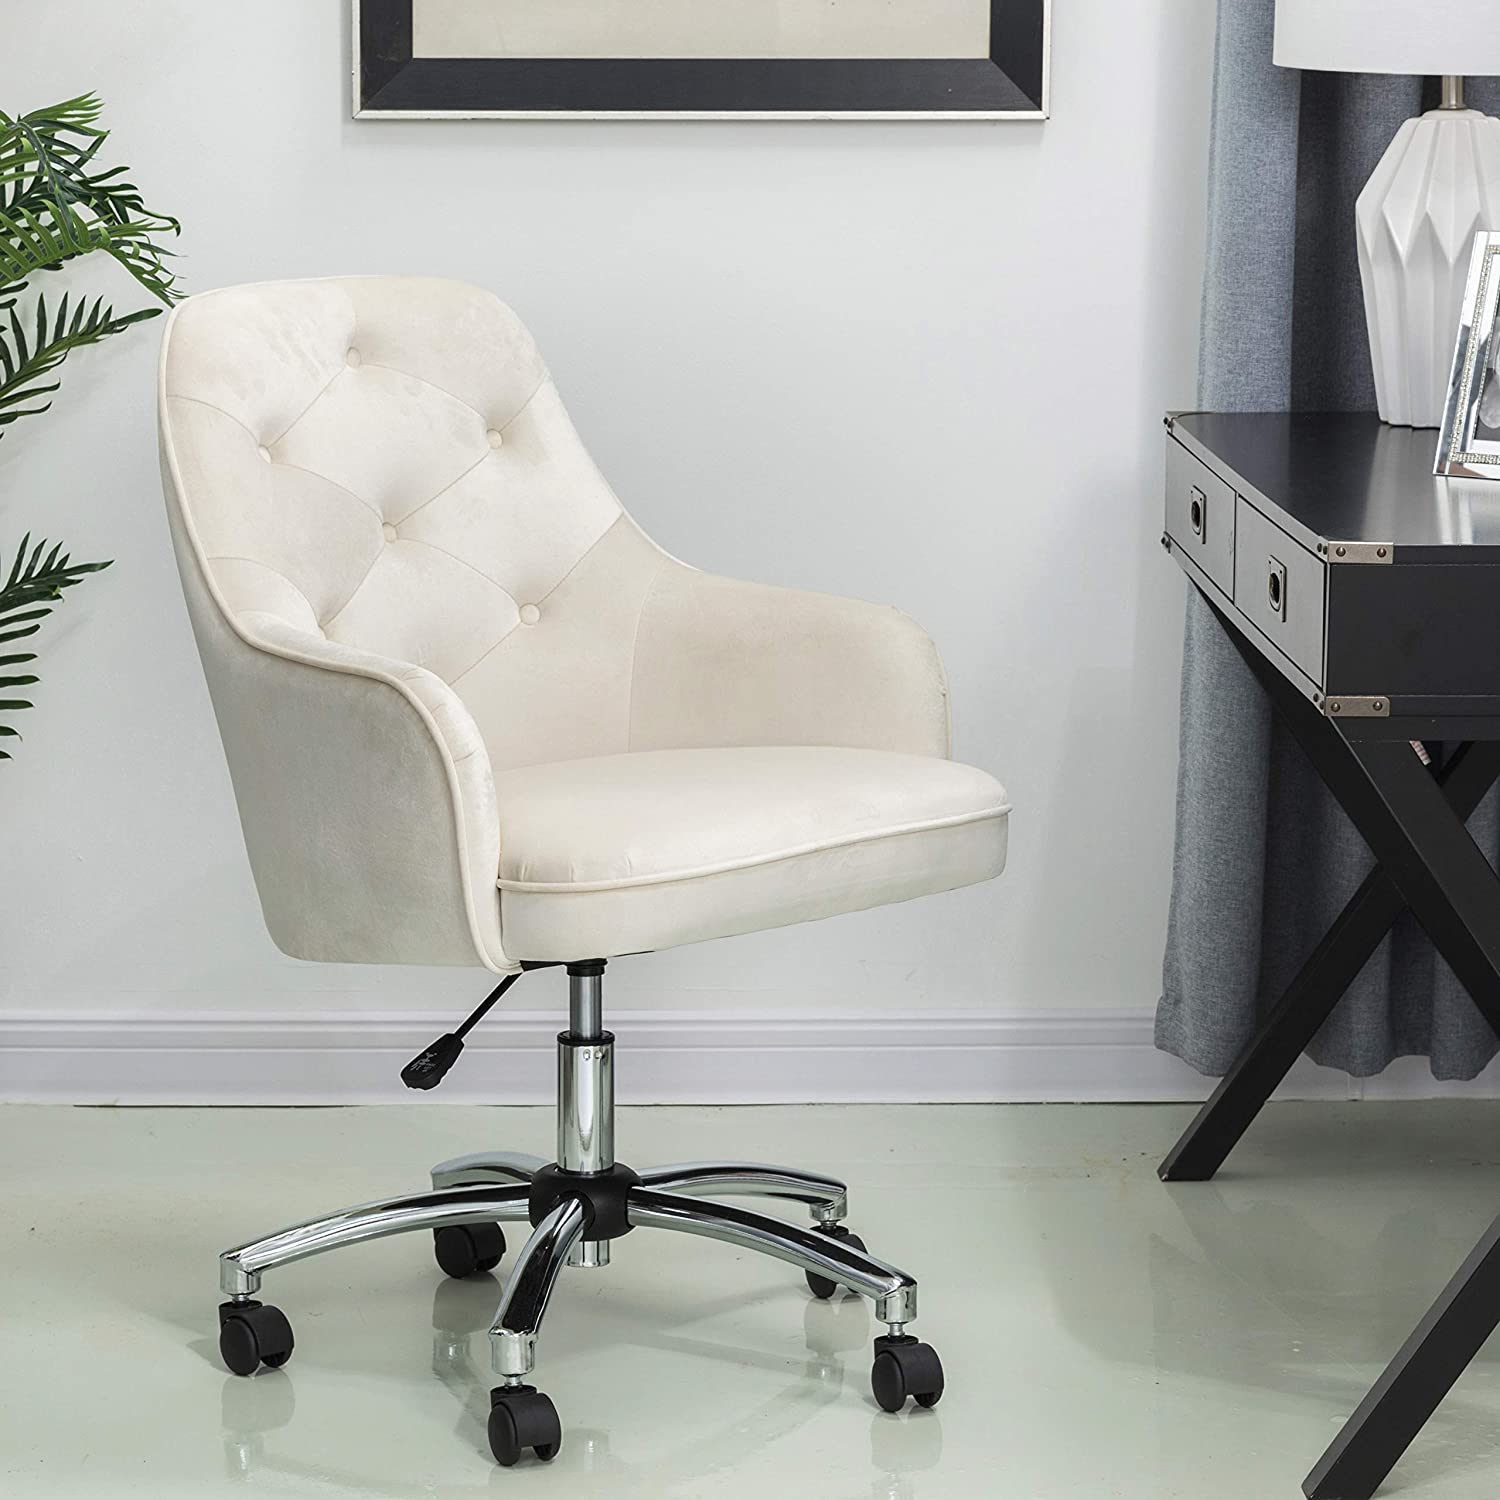 Glitzhome Home Office Chair Adjustable Mid-Back Velvet Ergonomic Desk Chair Comfortable Computer Chair with Lumbar Support Modern Rolling Swivel Chair with Armrest, Cream White